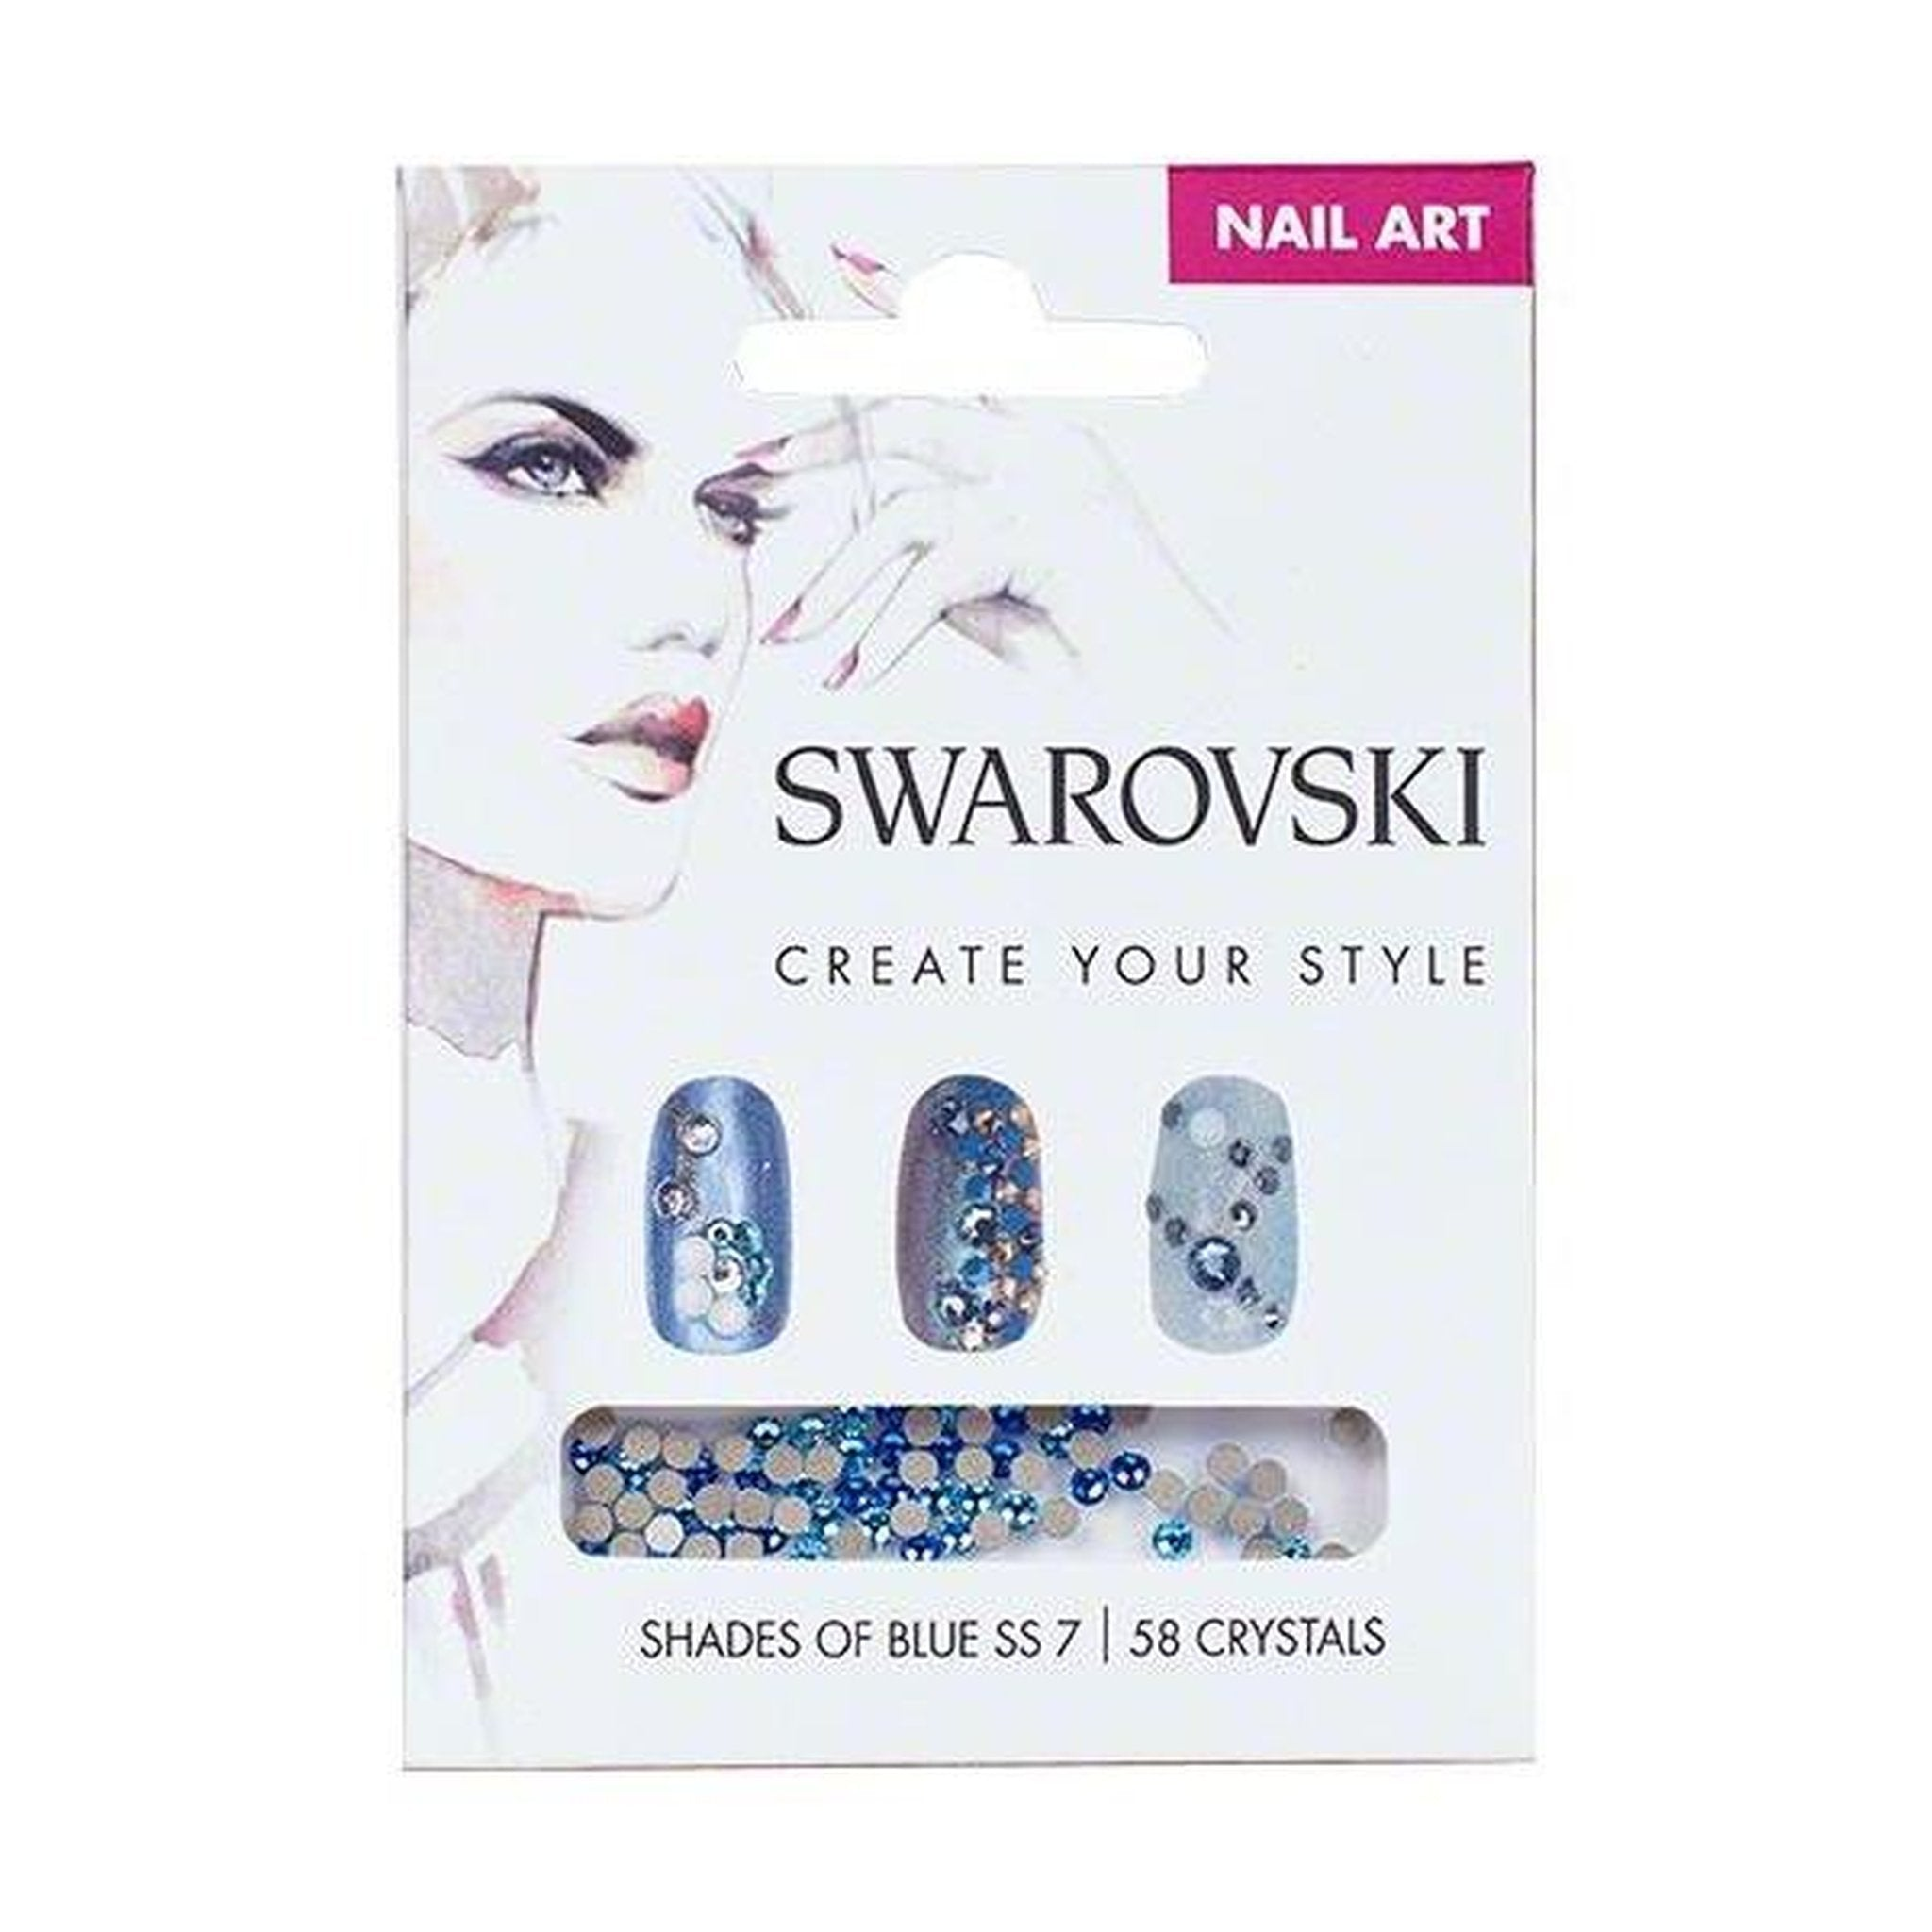 SWAROVSKI NAIL ART LOOSE CRYSTALS - BLUE SS7-Gel Essentialz